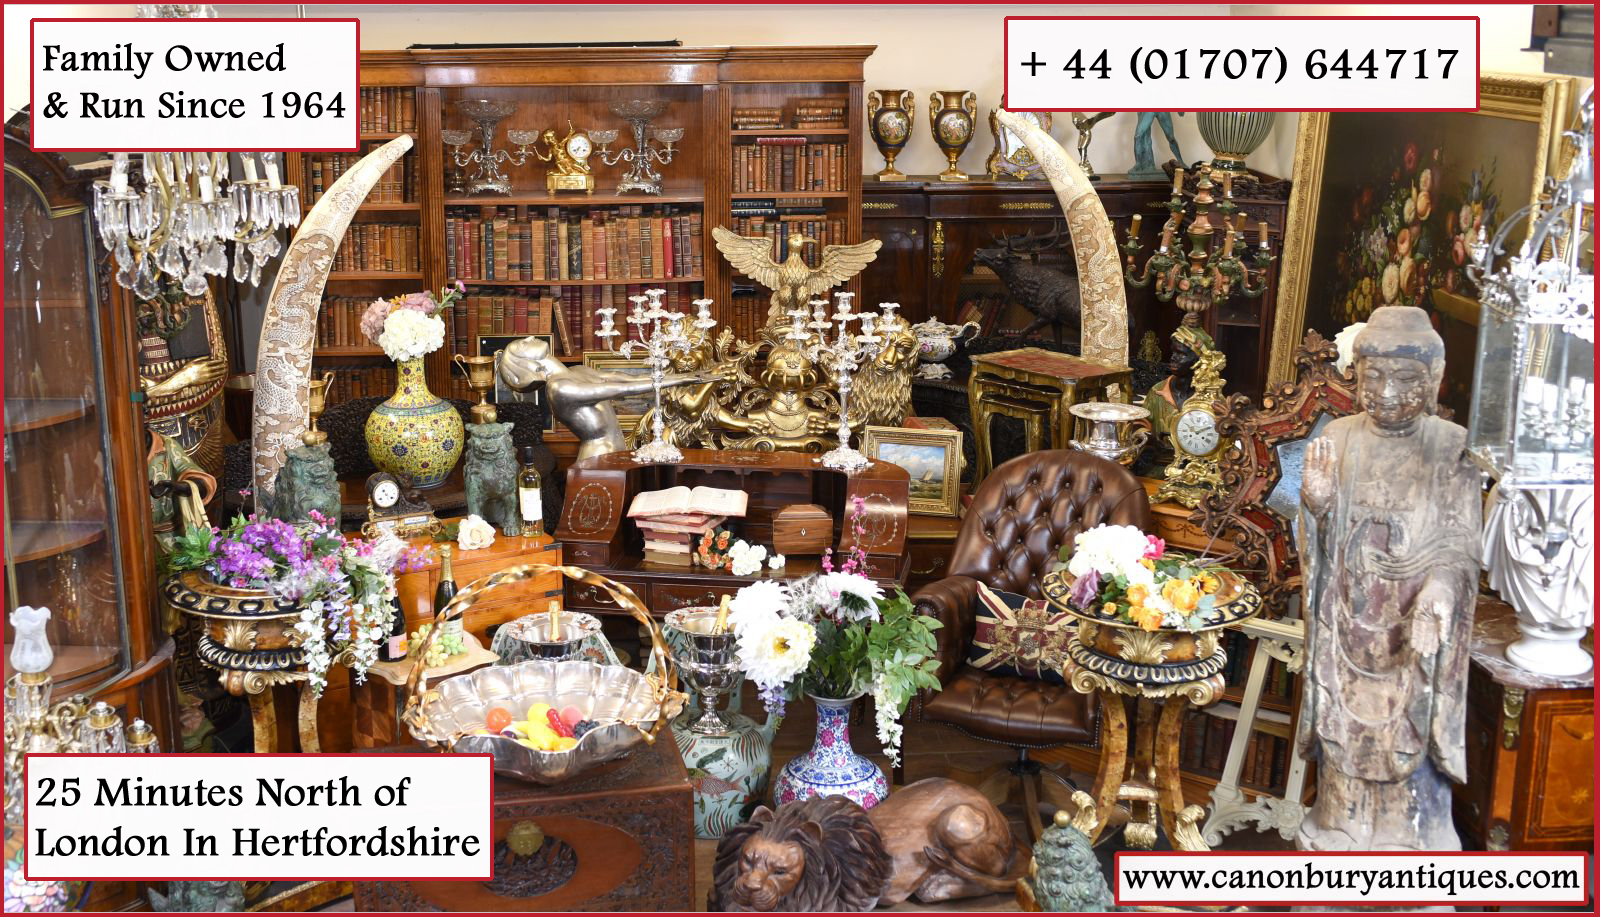 St Albans antiques - massive interiors showroom just 10 minutes from City centre